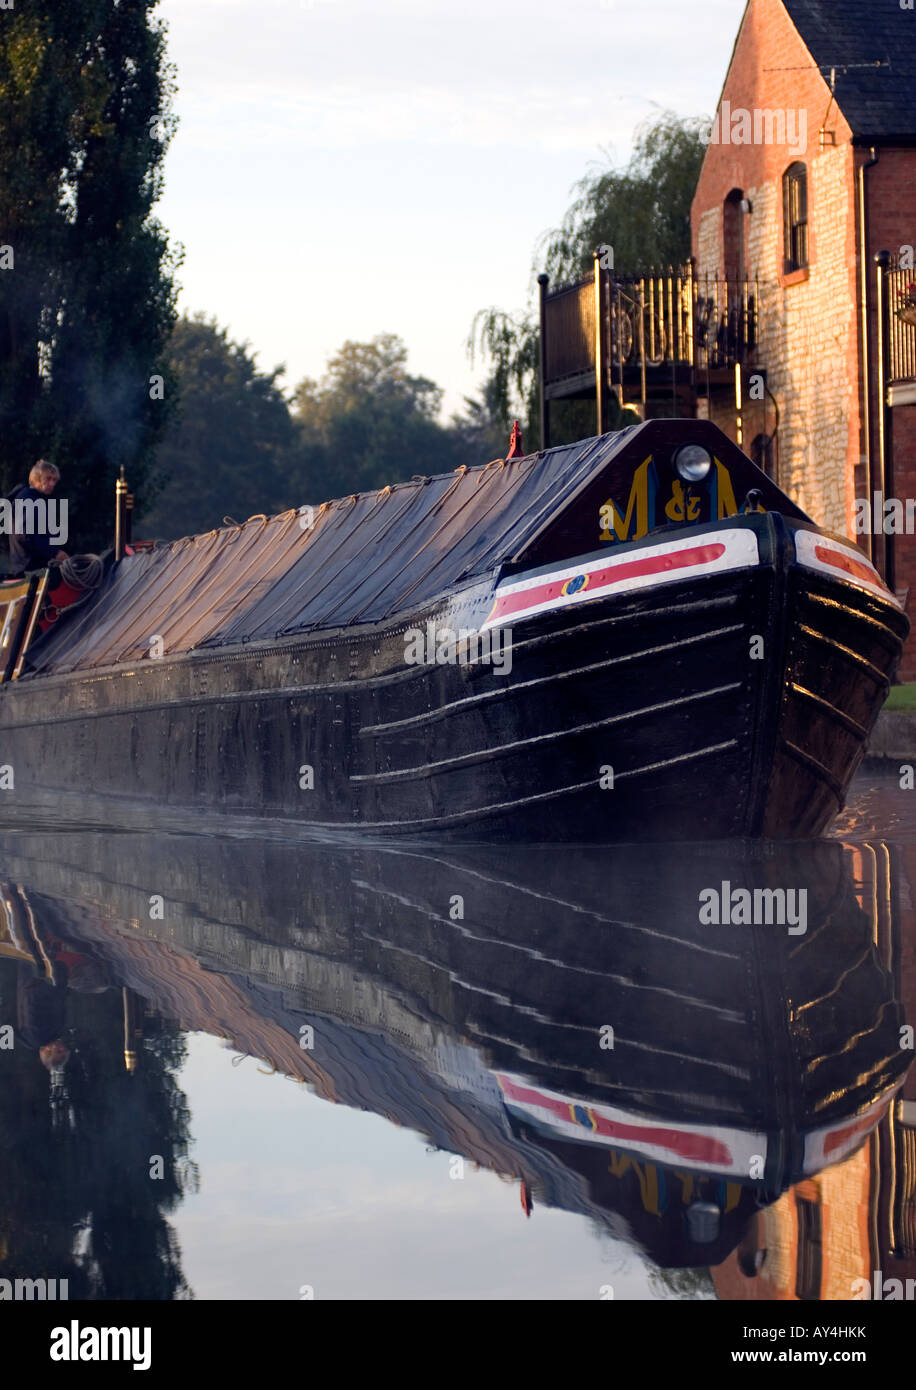 Doug Blane Traditional historic narrowboat navigating at Cosgrove on the Gran Union canal - Stock Image